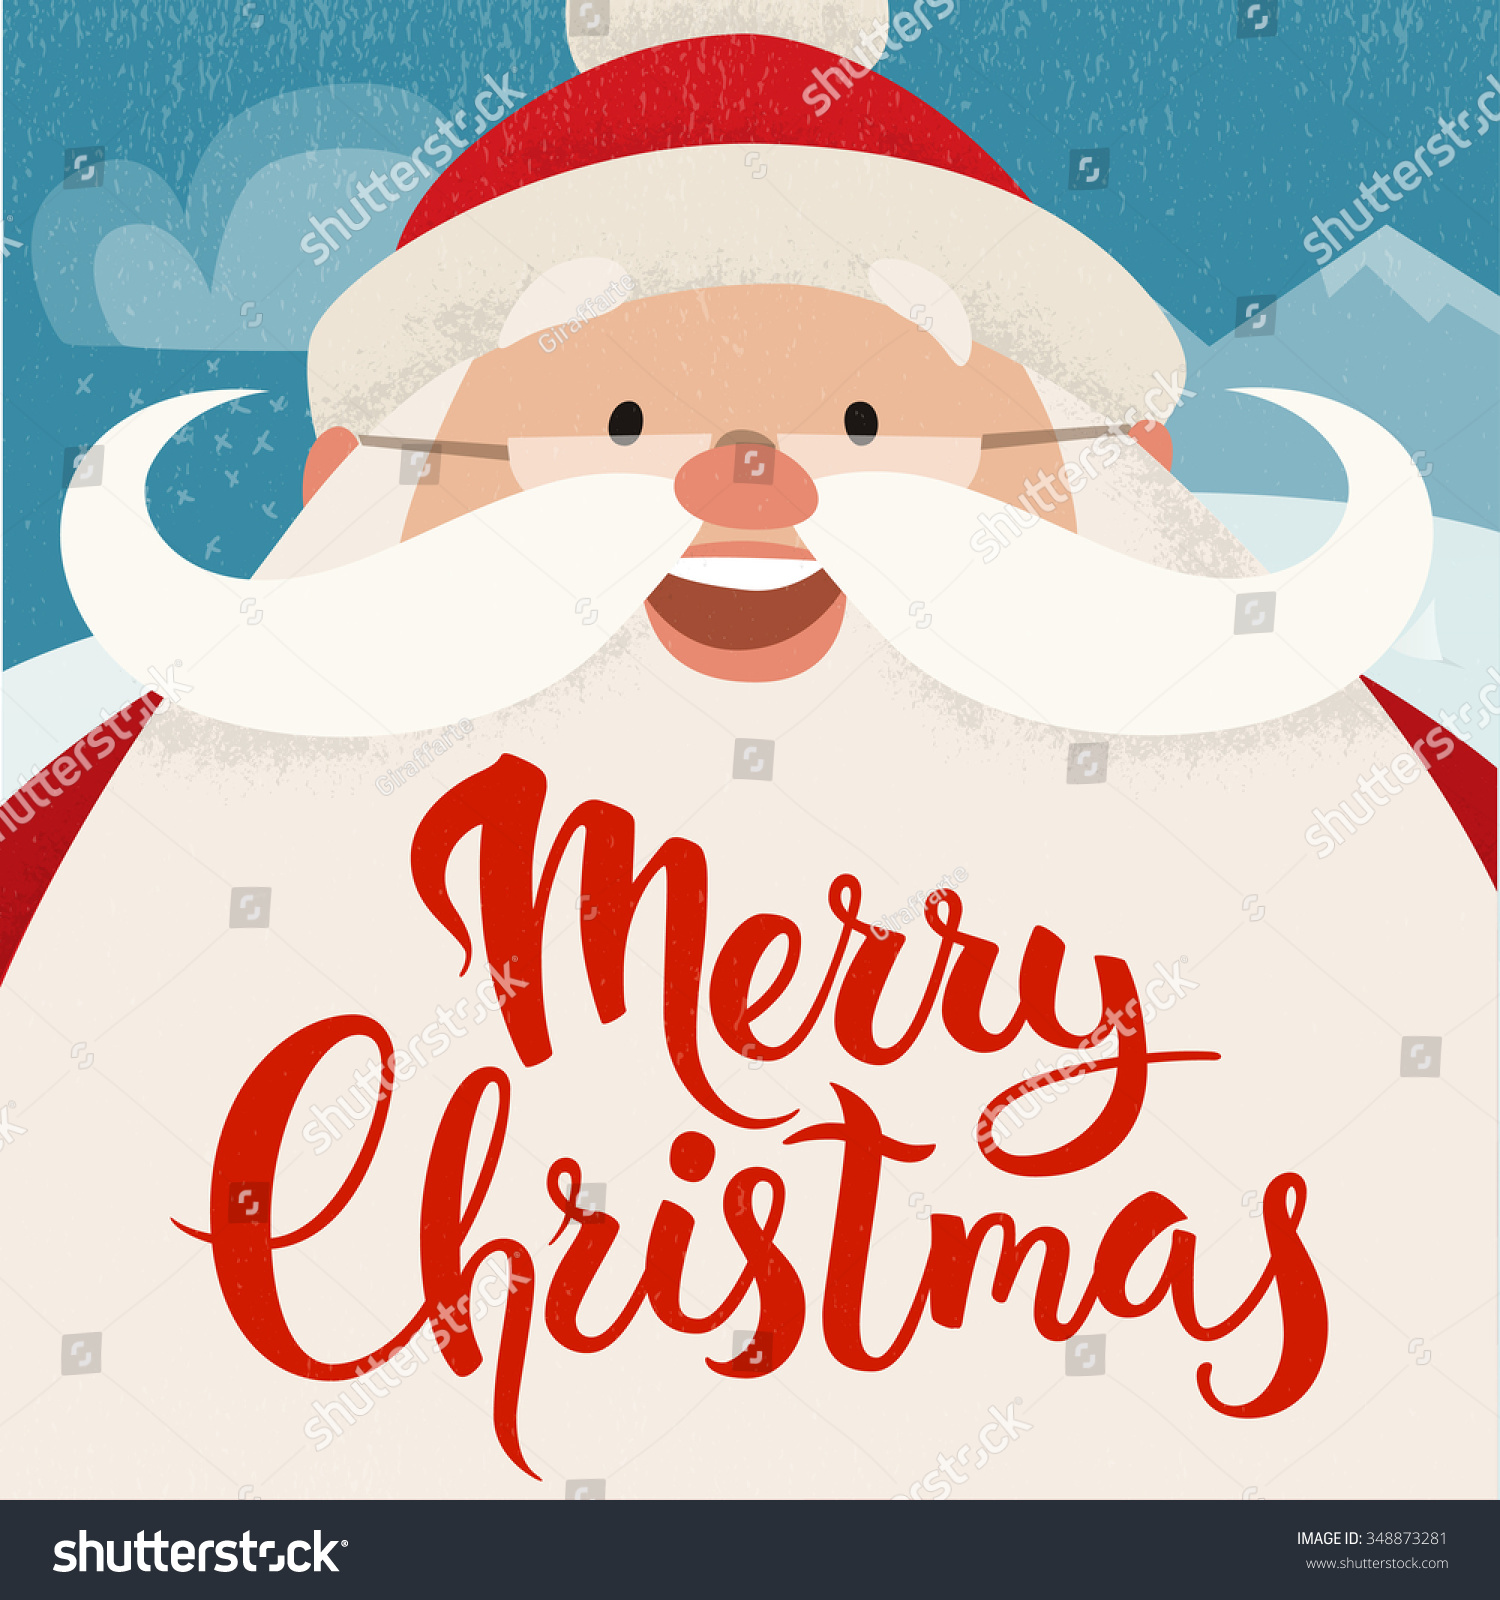 Merry Christmas Vector Card Funny Christmas Stock Vector (Royalty ...